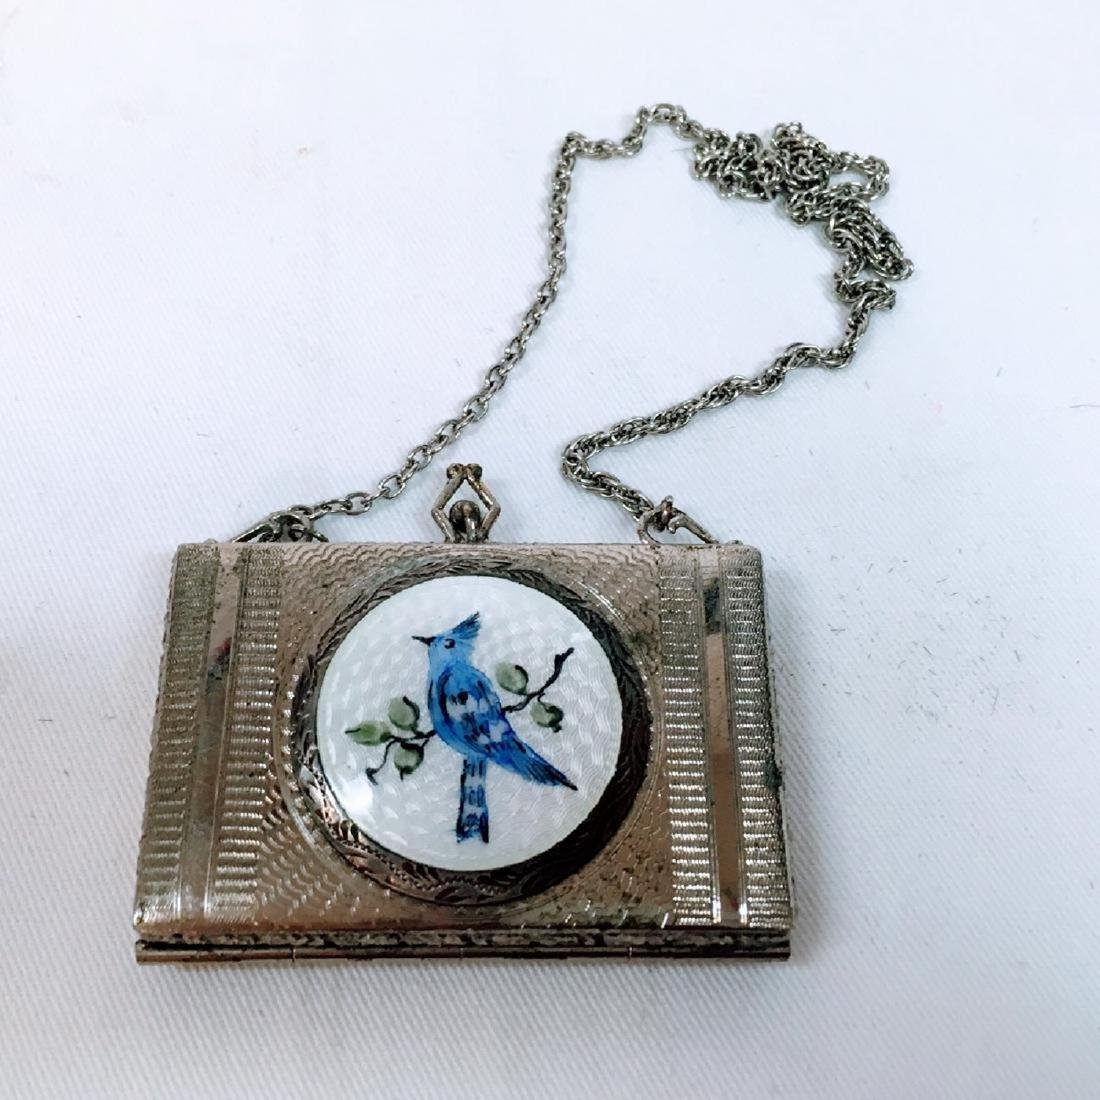 Antique silver Guilloche enamel dance compact with